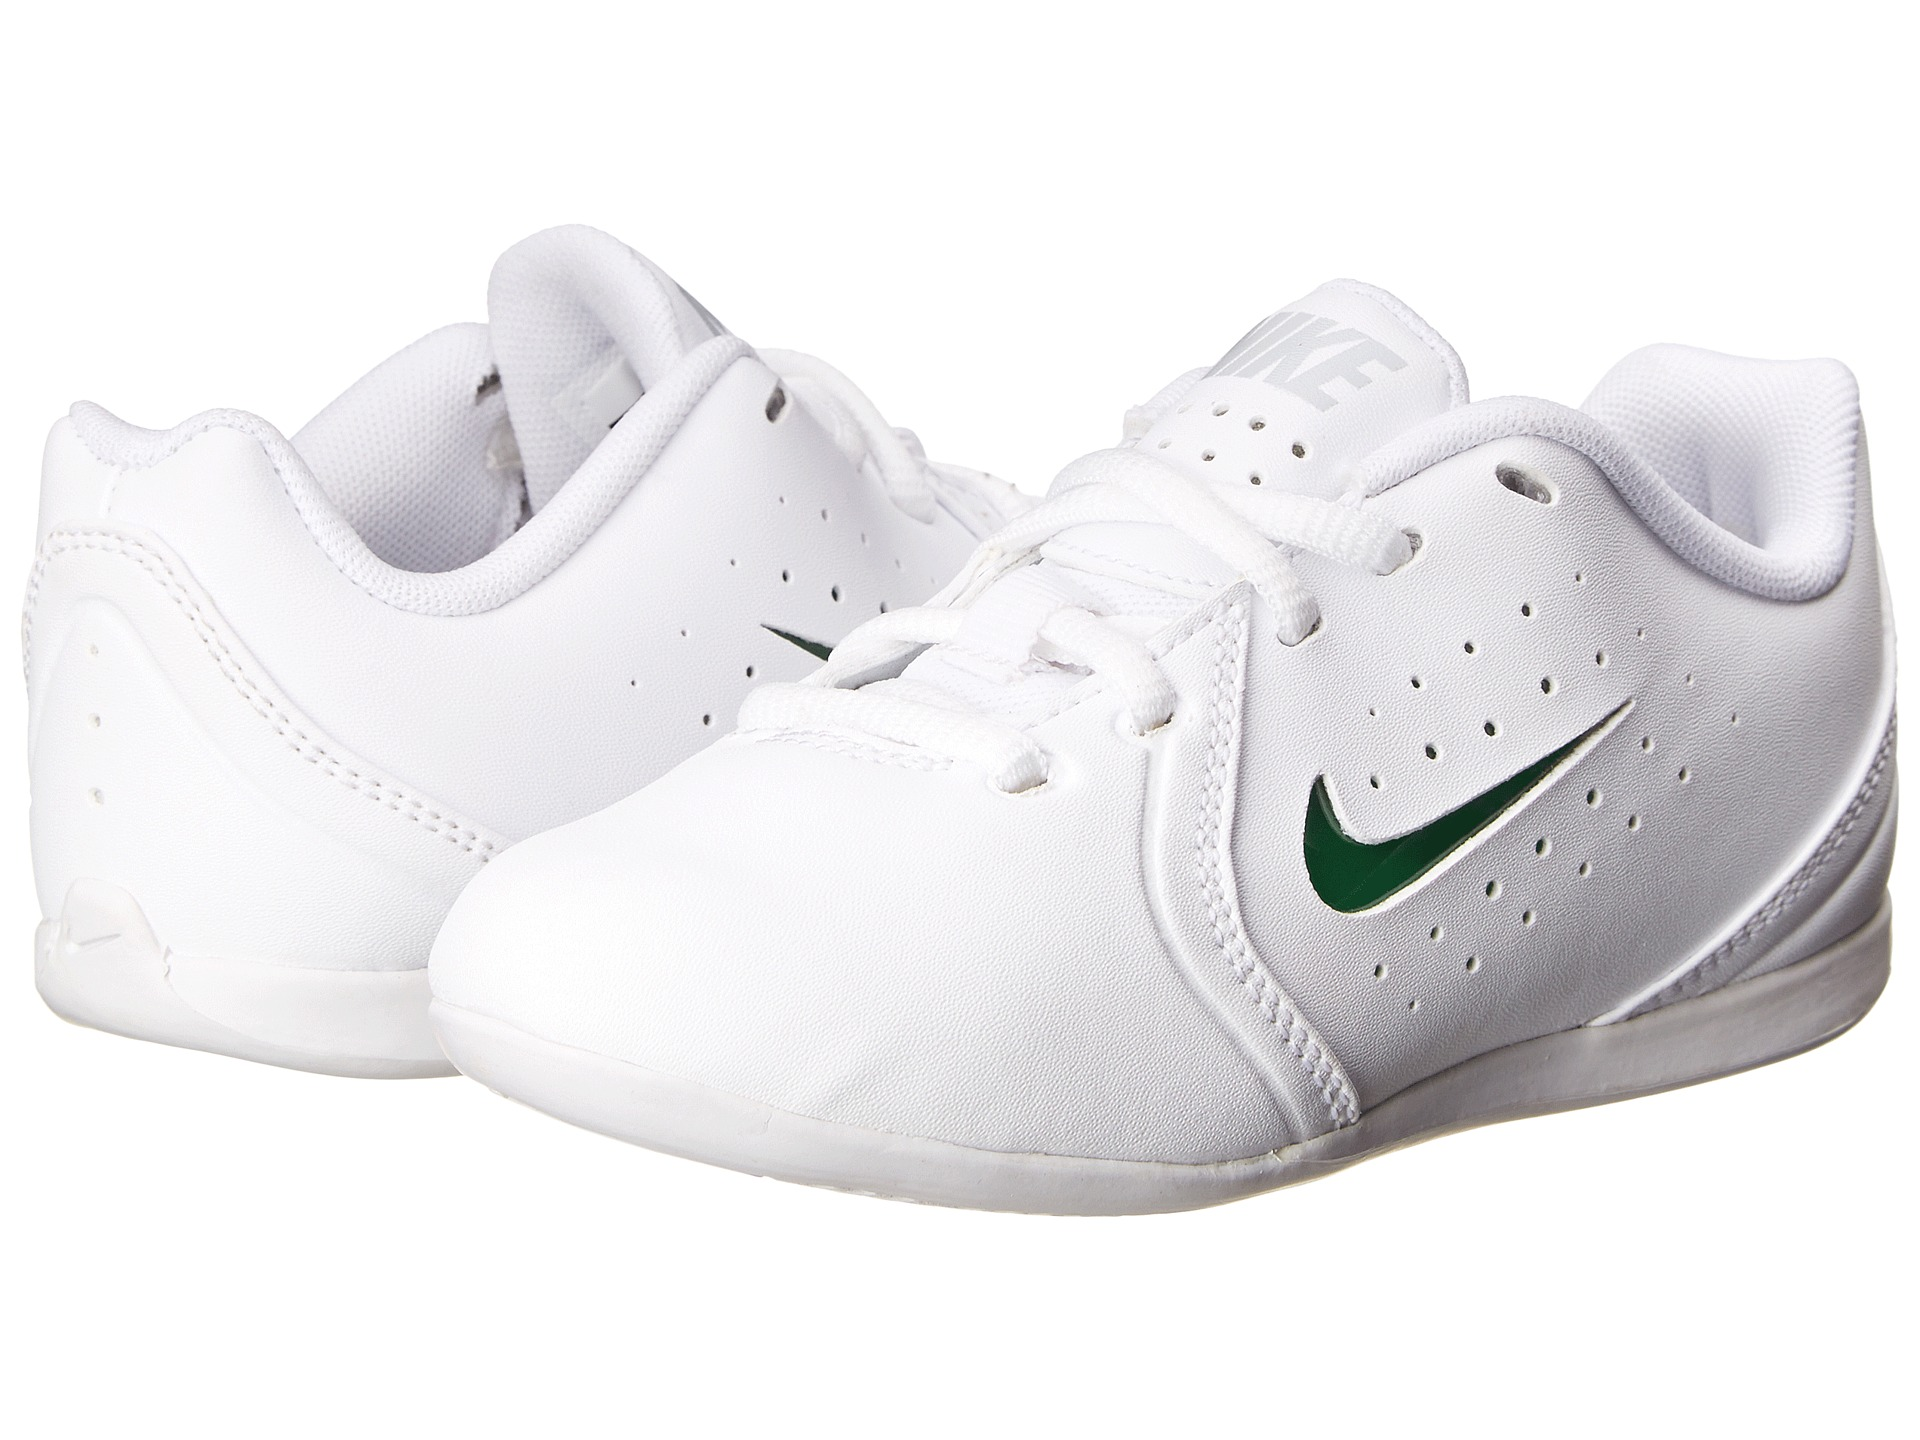 Nike Cheer Shoes Kids Matttroy